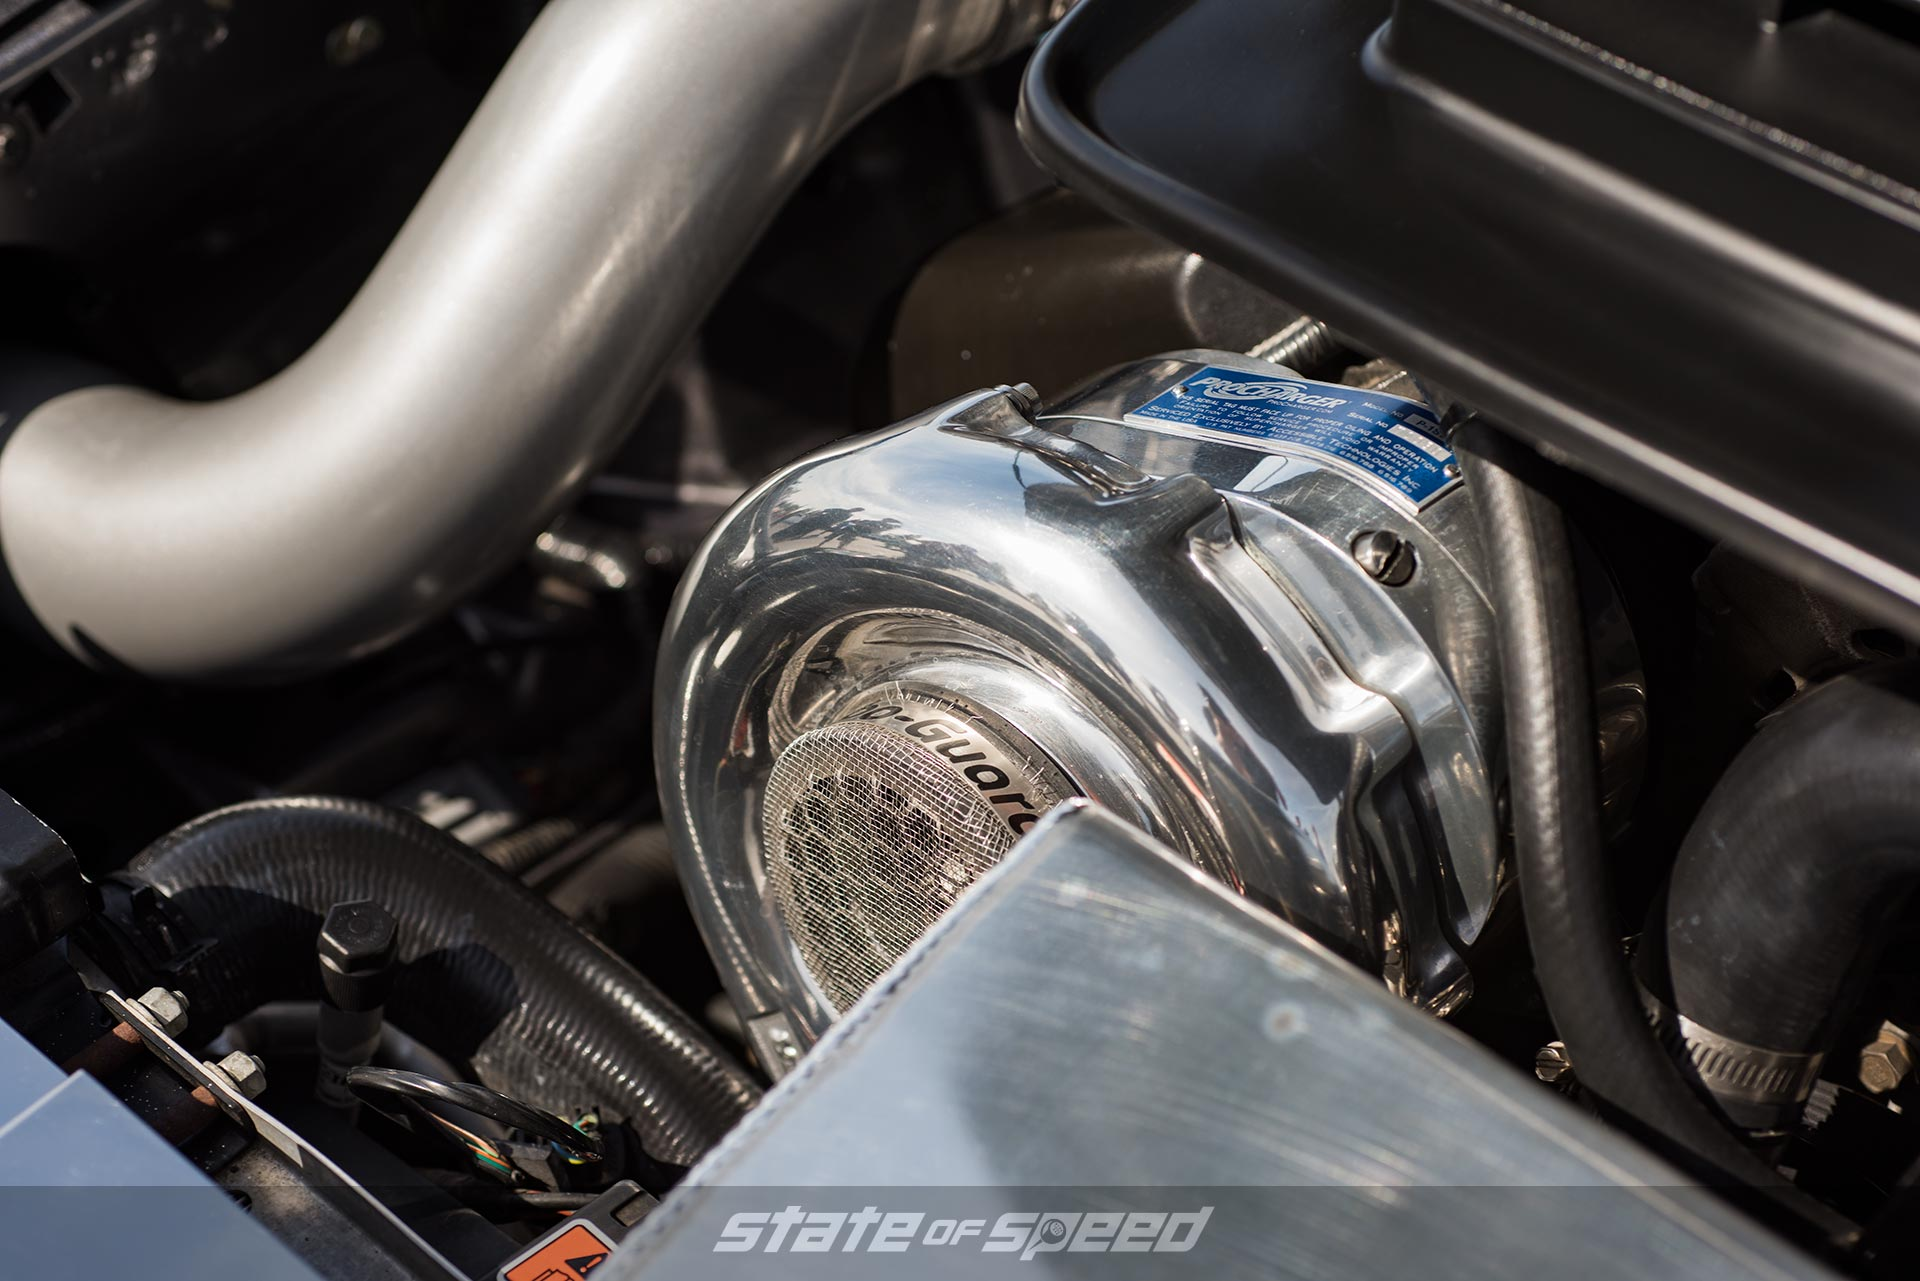 Turbocharger with a guard